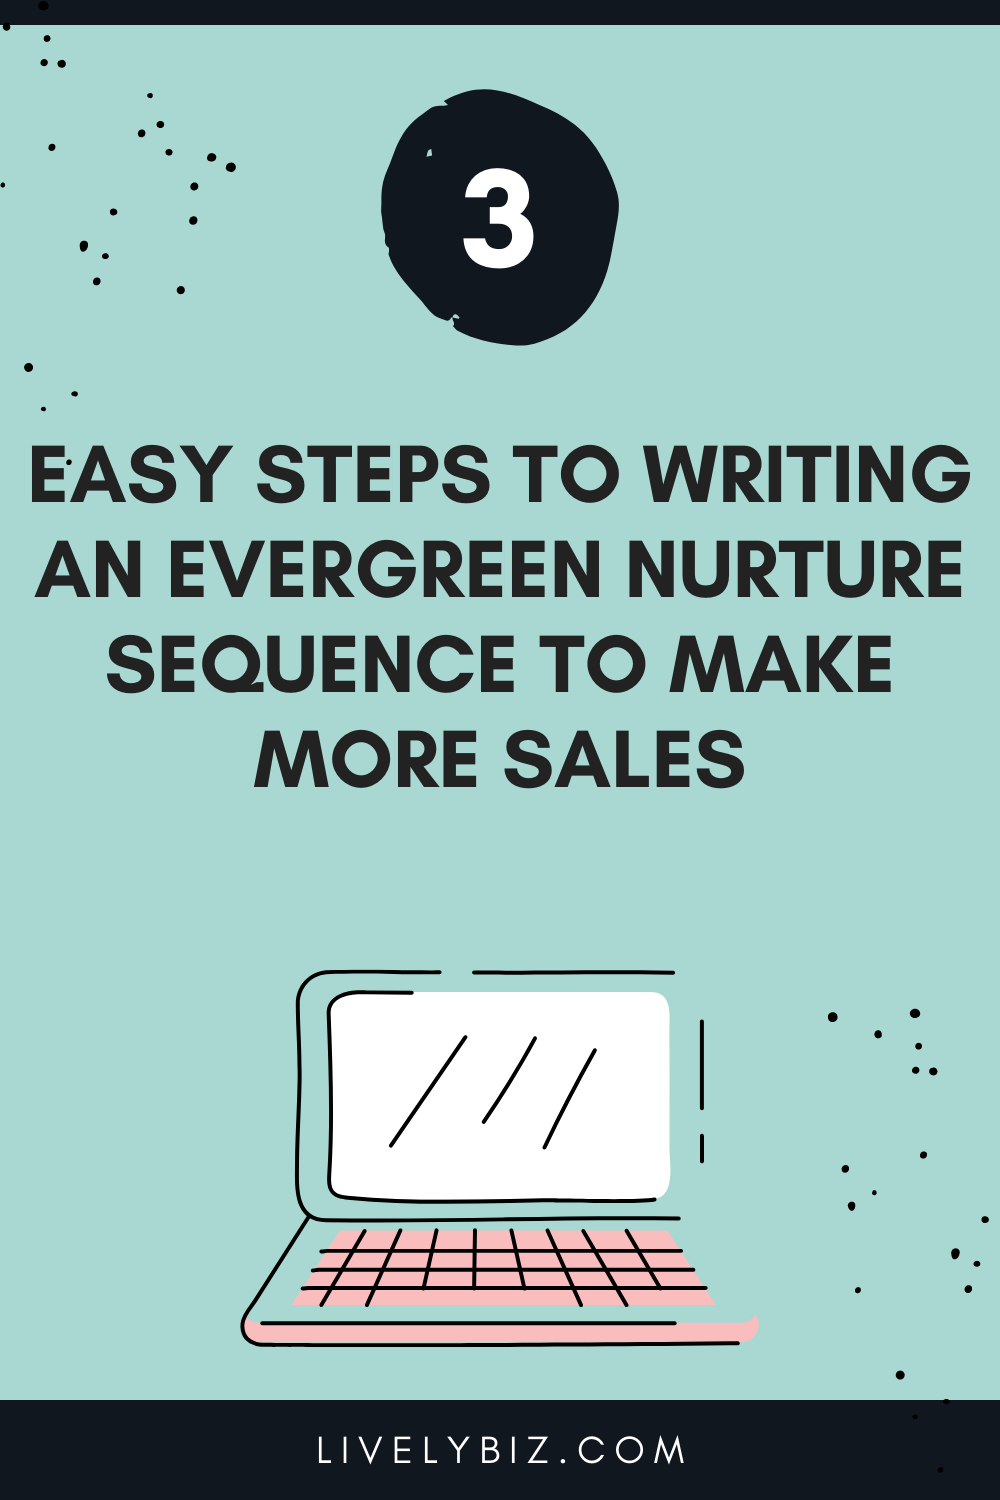 Writing an evergreen nurture sequence to make more sales